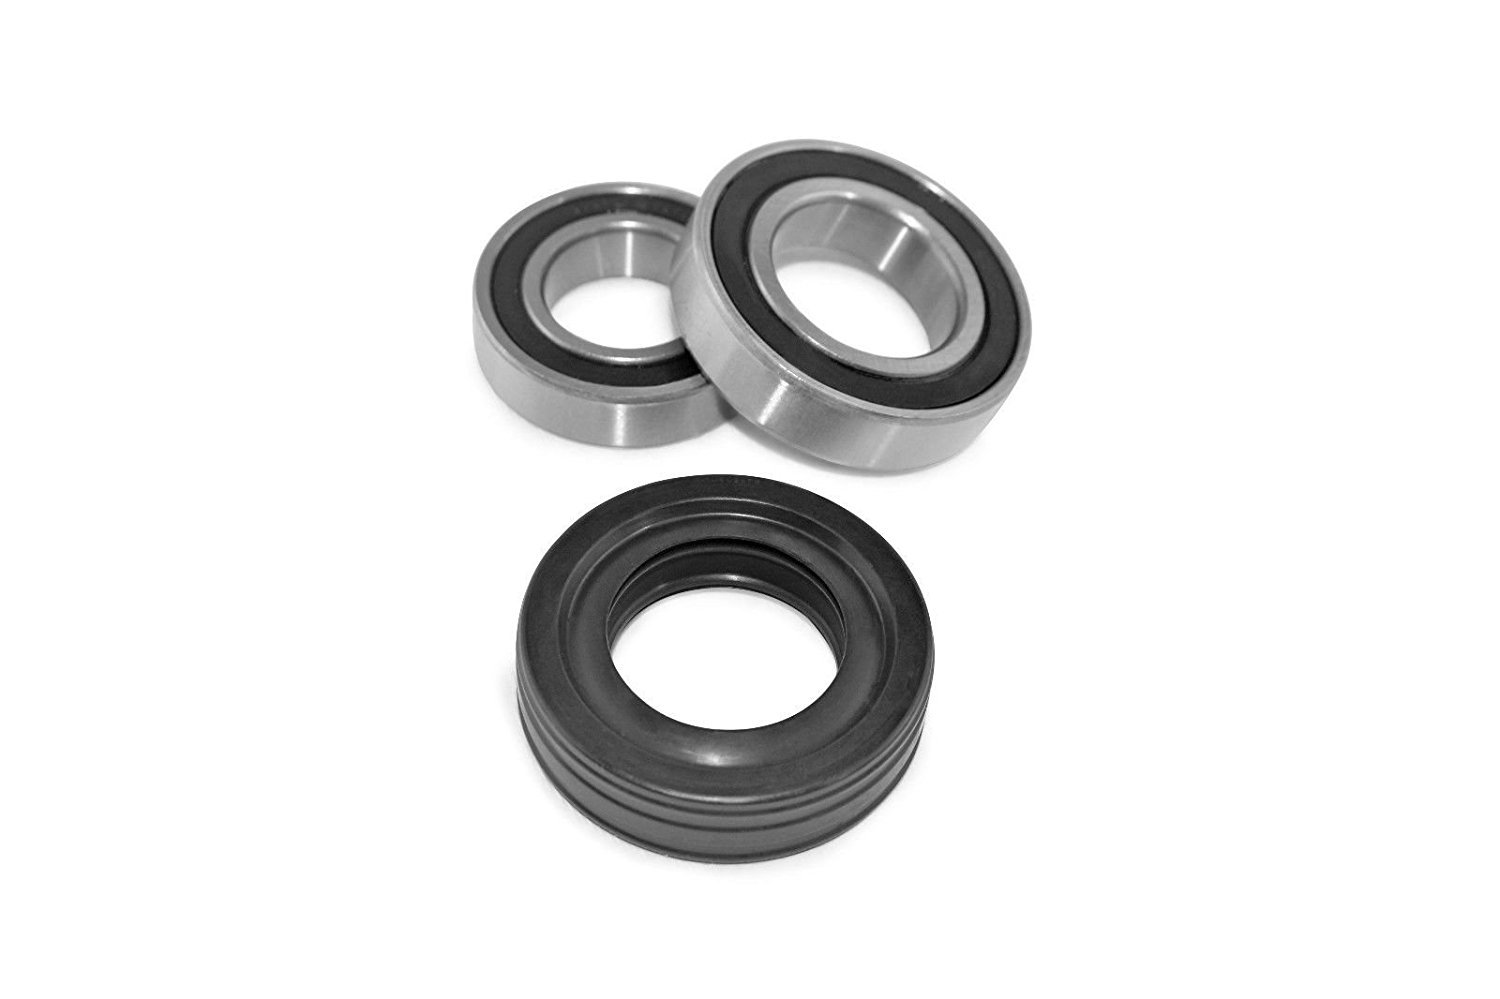 NEW Whirlpool Cabrio Bravo Oasis Exact Replacement Tub Bearings & Seal Kit replacement W10435302 W10193886 PS3503261 by PRIMECO - WARRANTY